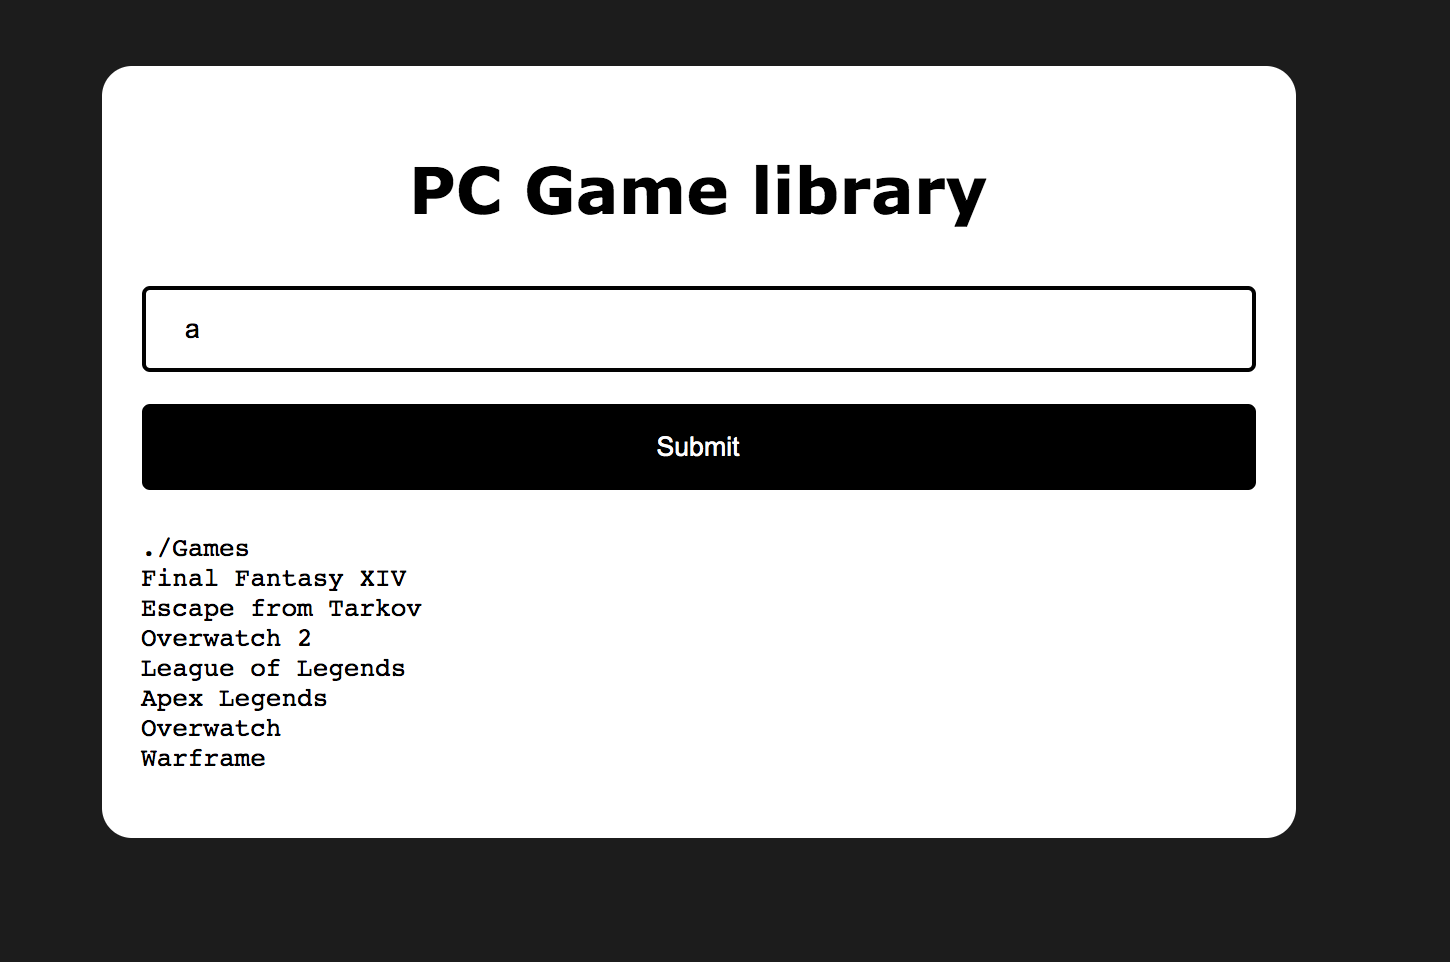 Screenshot of PC Game library website with submission field.